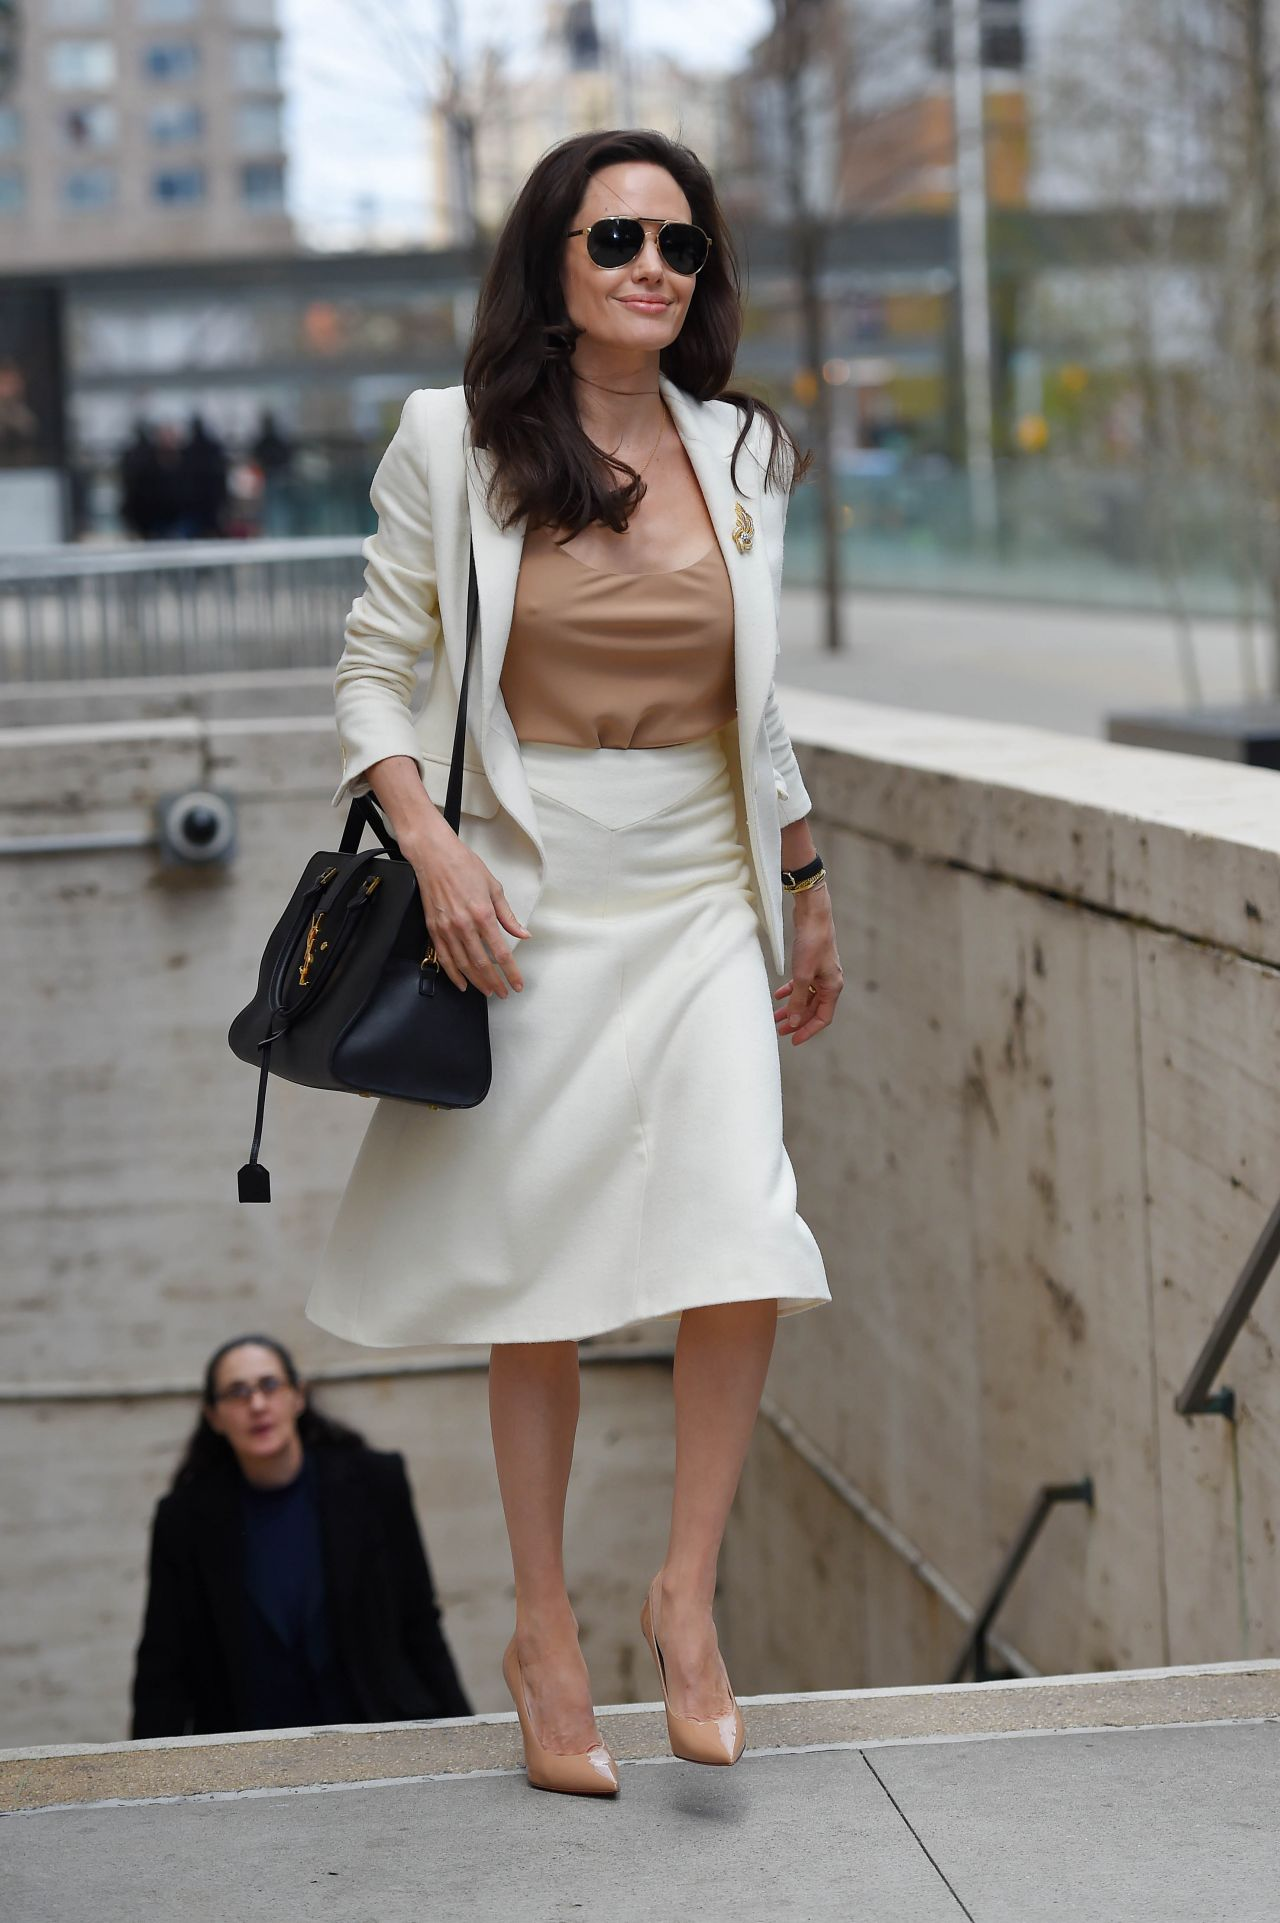 angelina-jolie-style-leaving-the-lincoln-center-in-nyc-april-2015_1